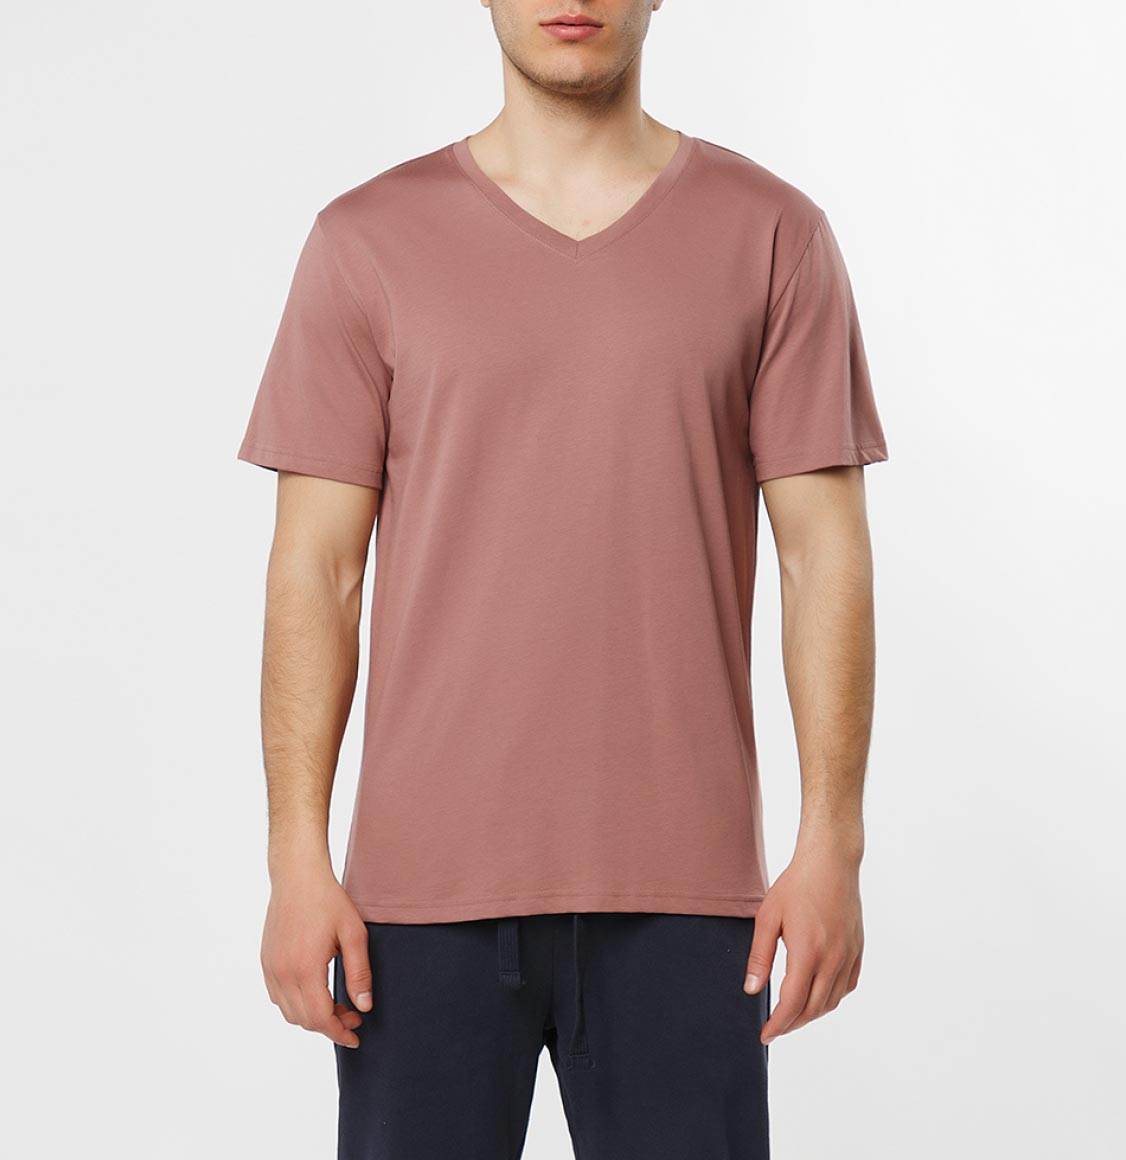 The Project Garments Organic Cotton V-neck T-shirt Rosewood